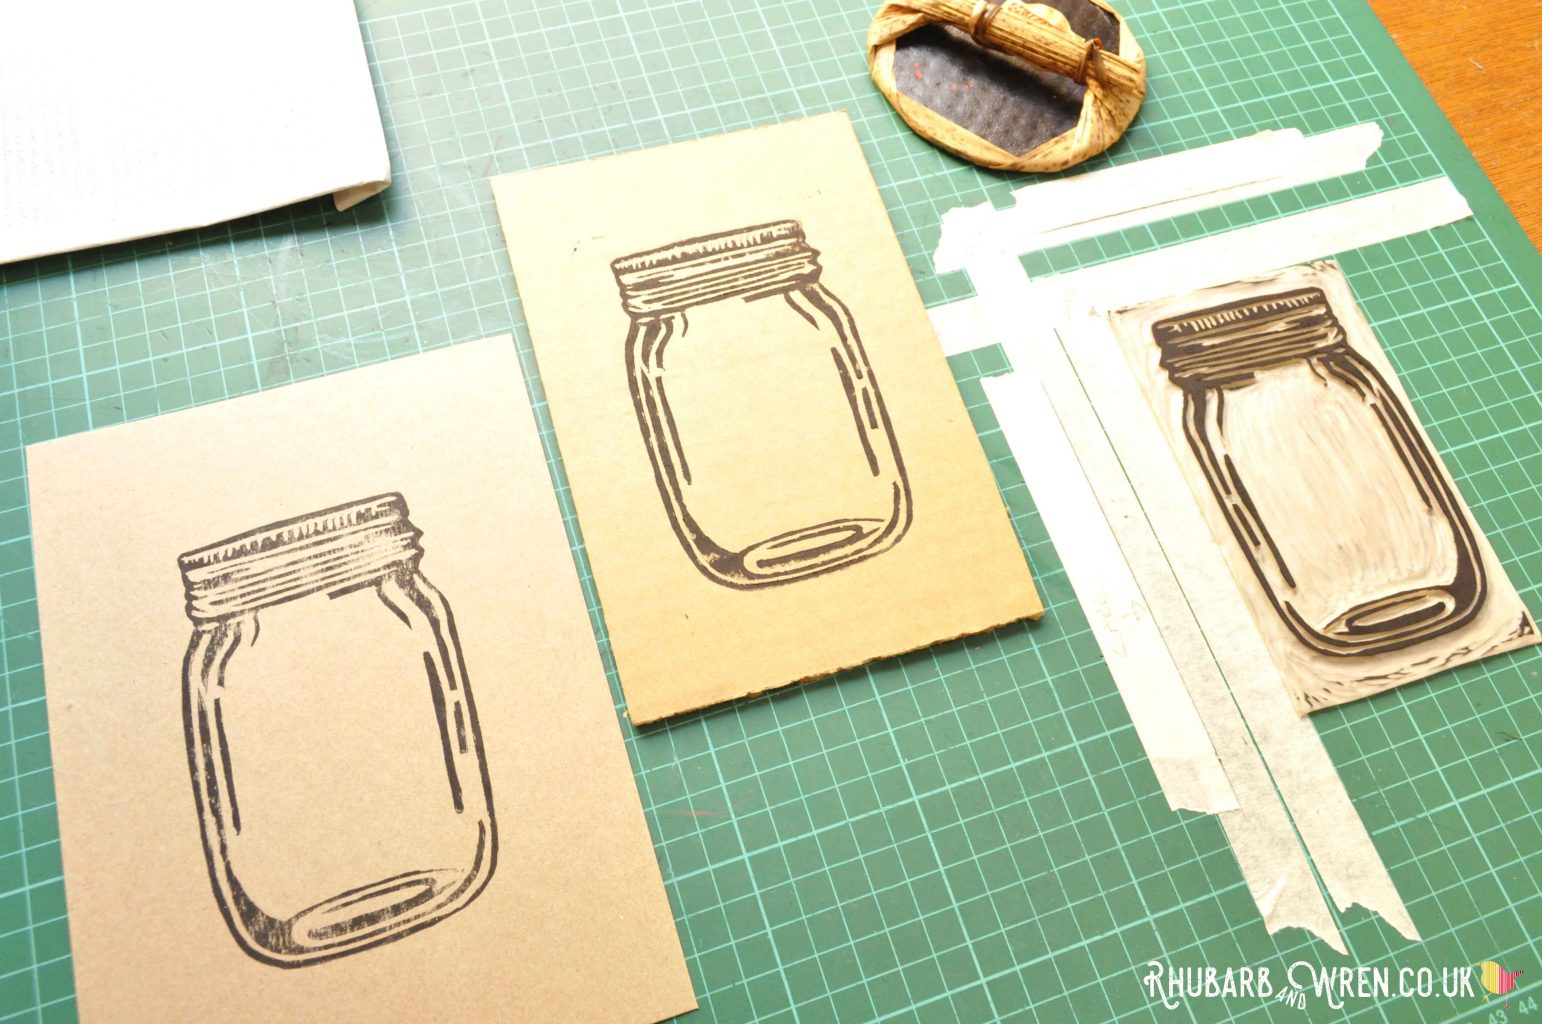 Mason jar shaker card in progress - image on card.